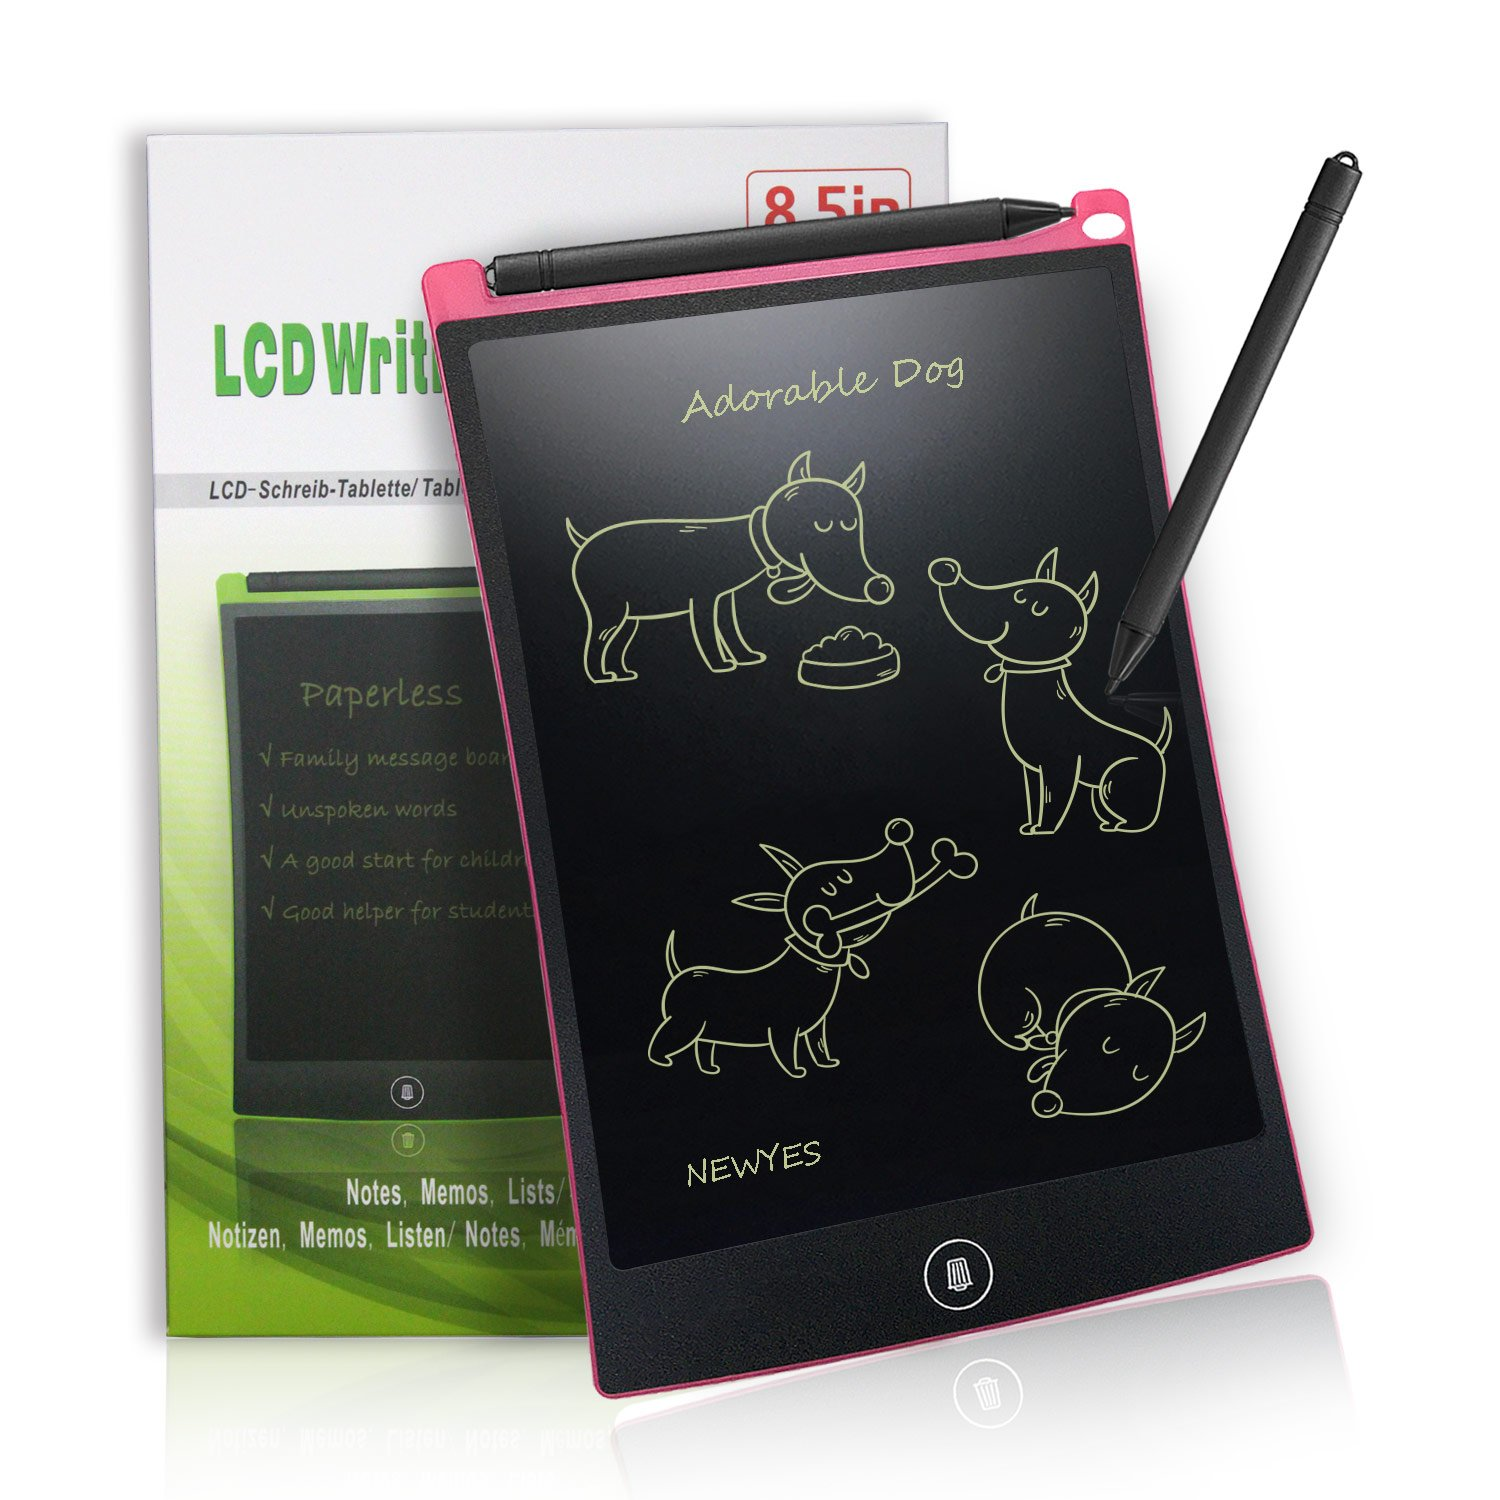 LCD Writing Tablet Digital Ewriter - NEWYES NYWT850-8.5 Inch Graphics Tablet Portable White Board Rugged Drawing Tablet Suitable for Home School Office Memo Notebook, 1 Year Warranty (pink)